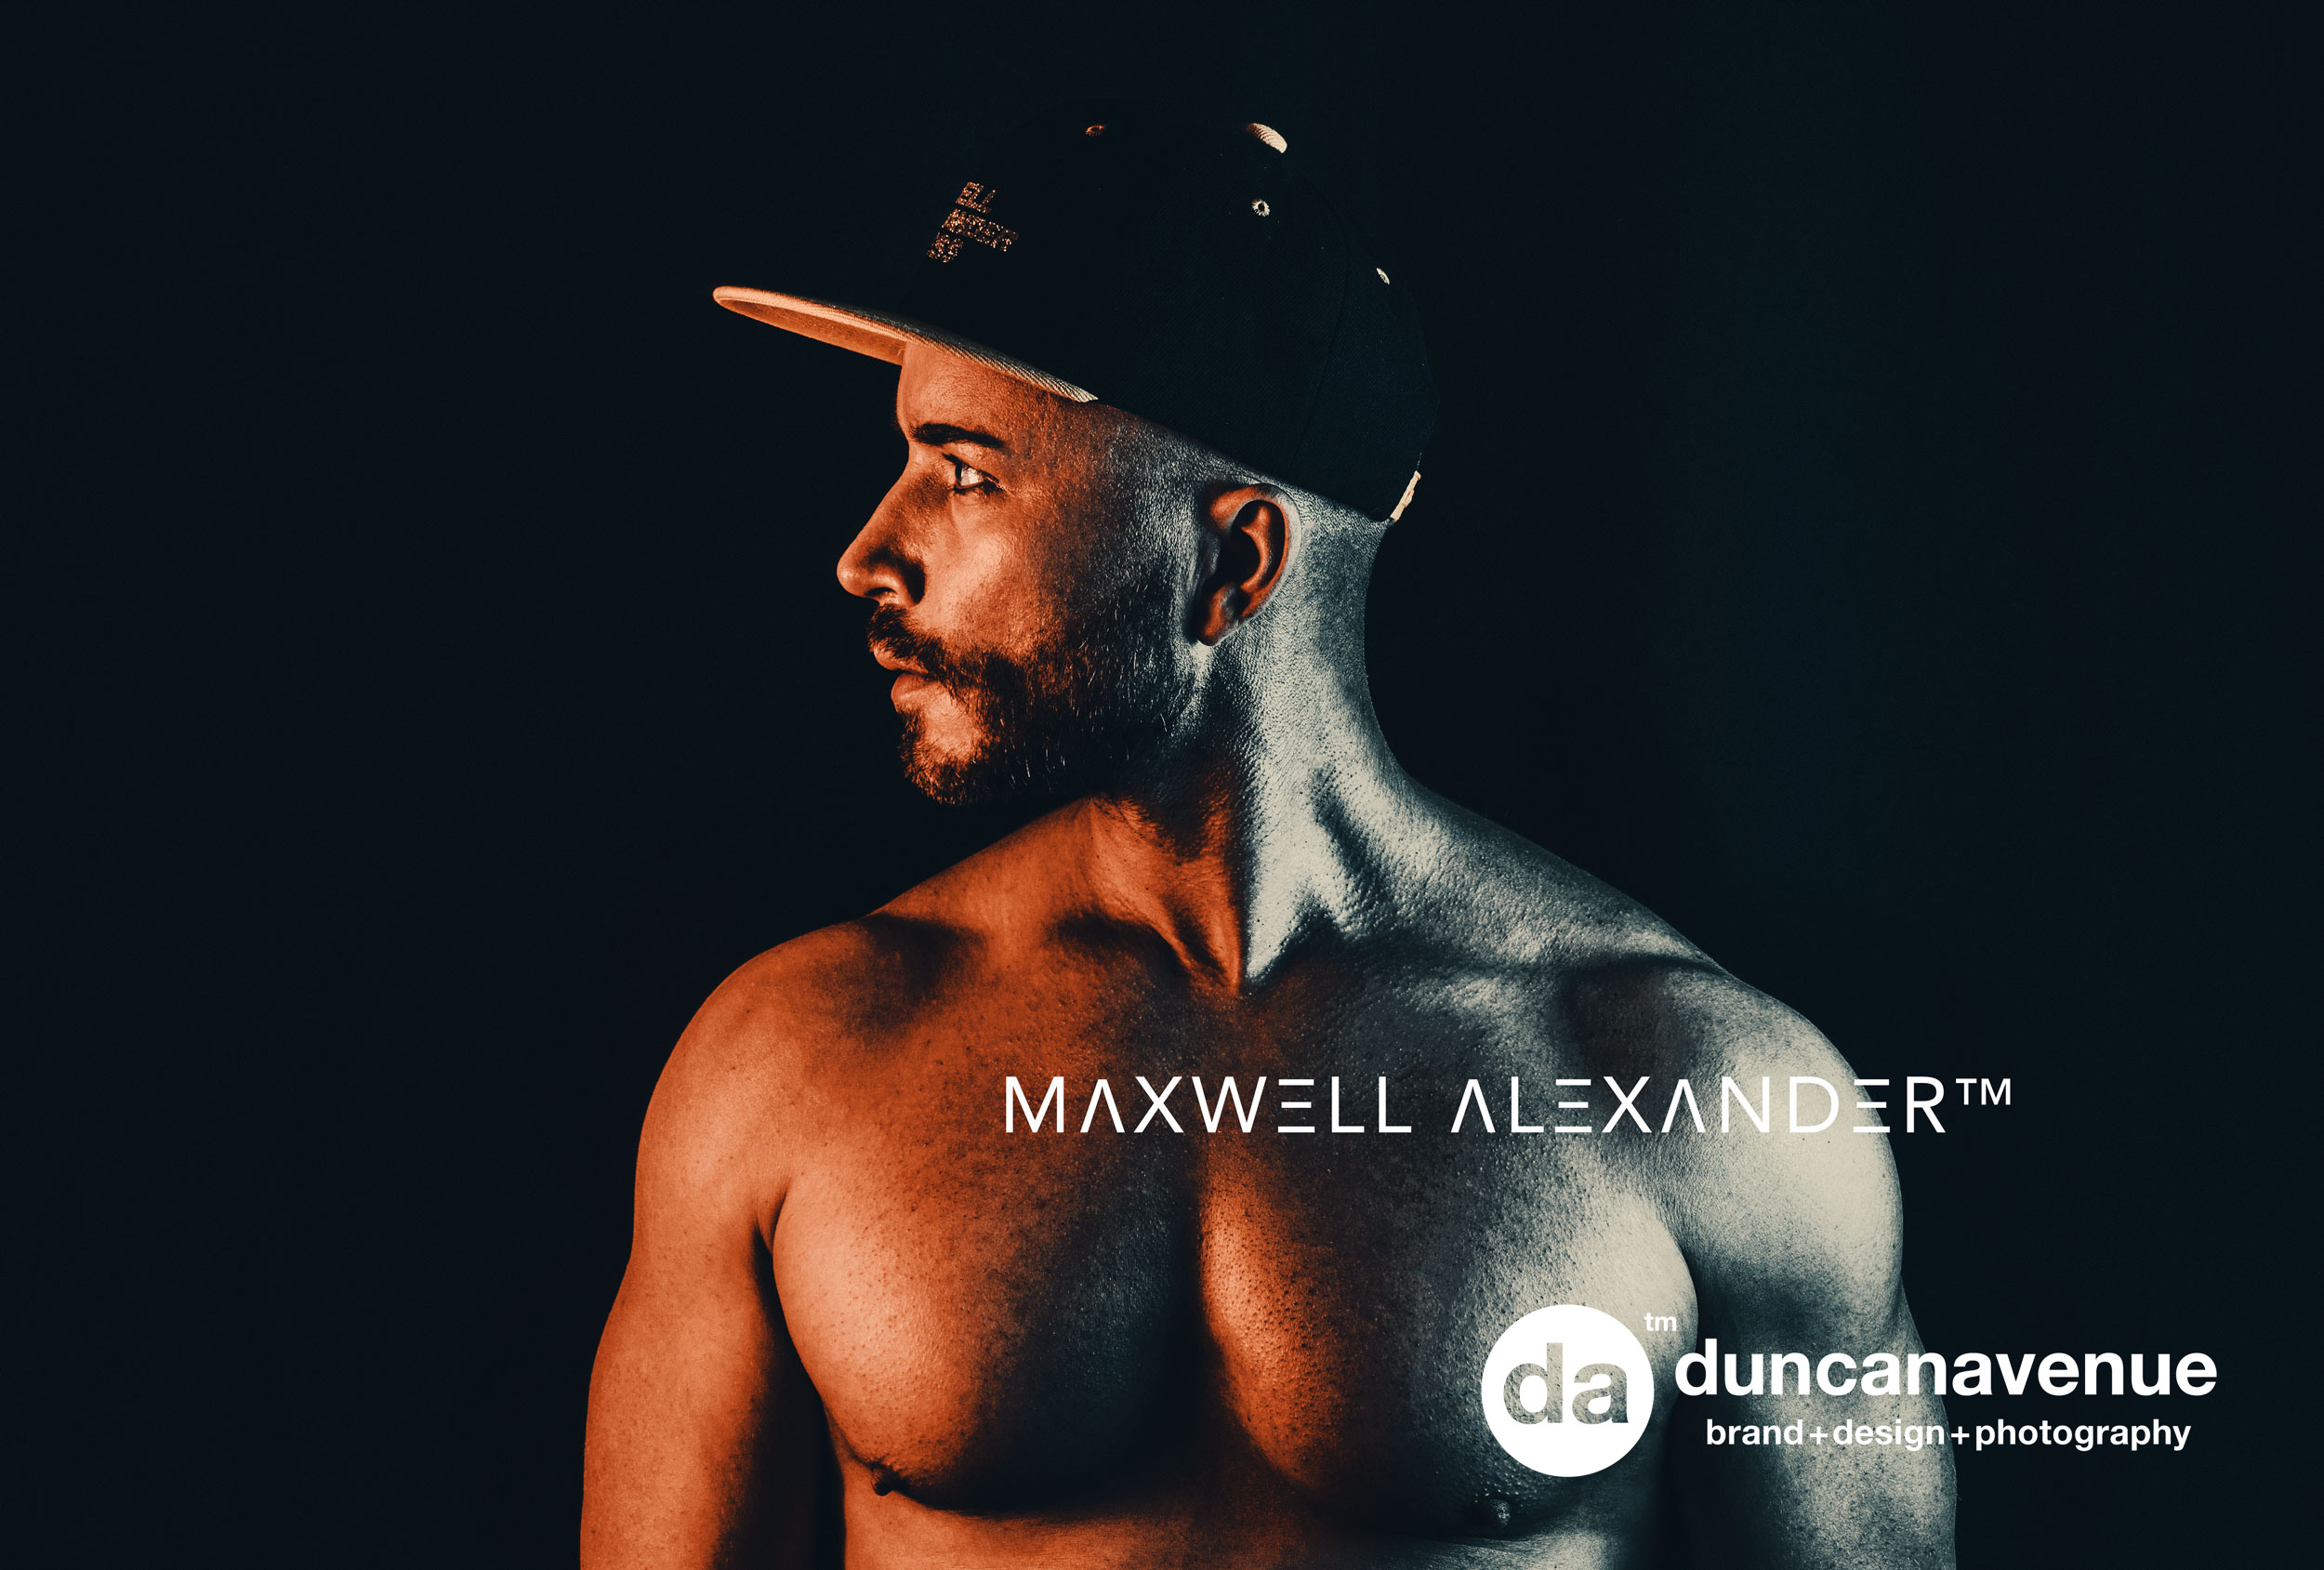 Fitness and Bodybuilding Coach Maxwell Alexander - Wellness, Nutrition, Bodybuilding